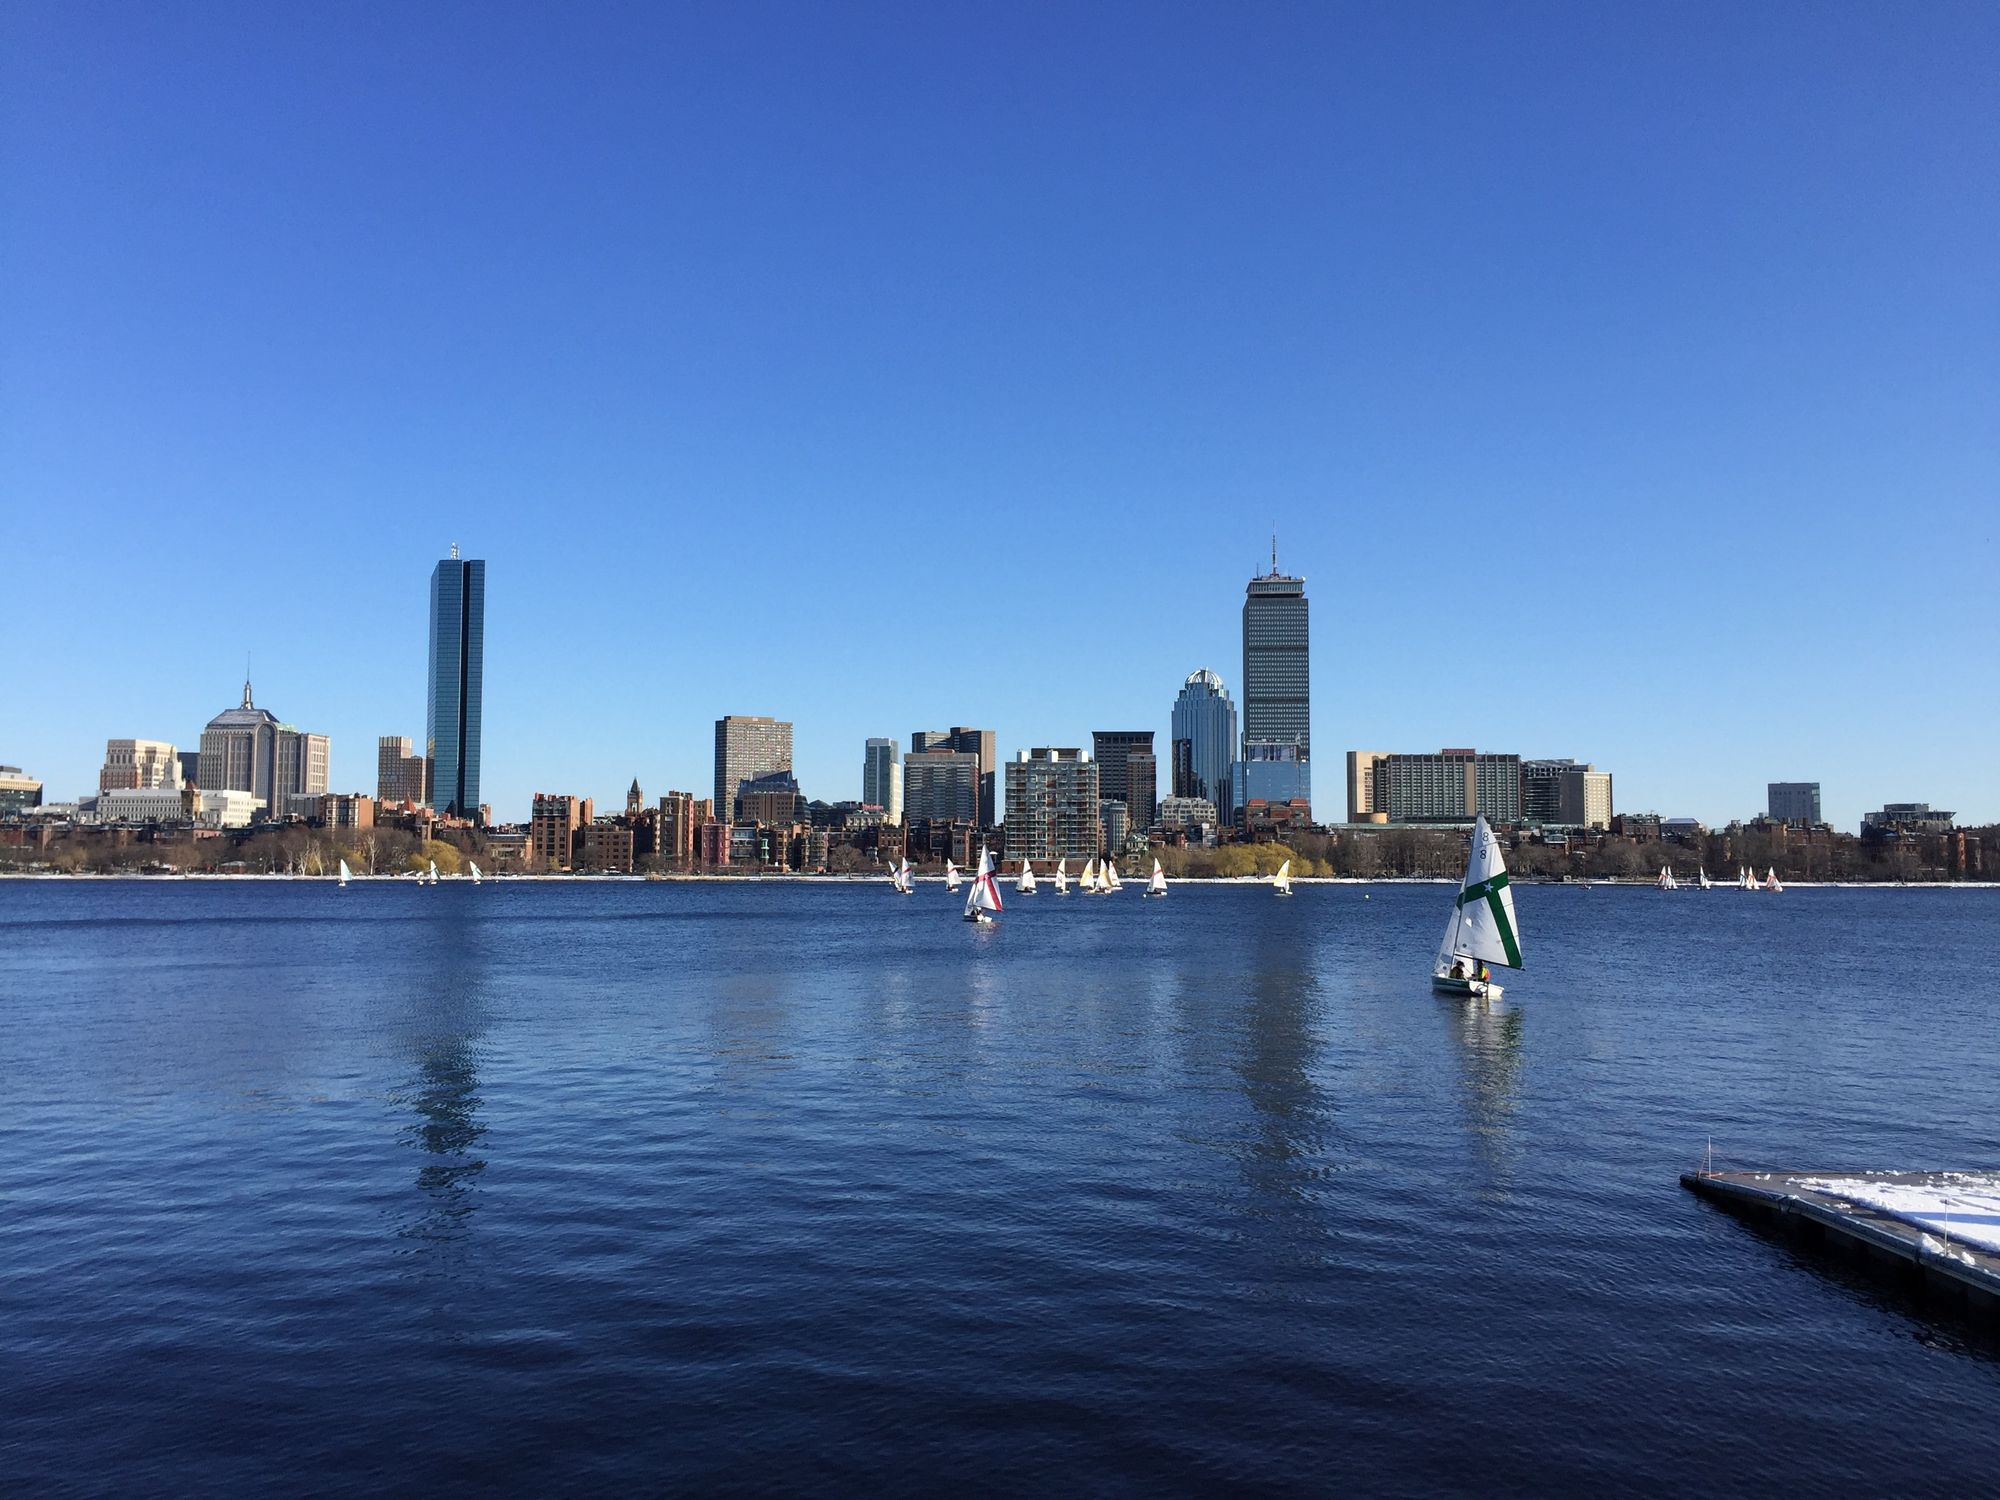 Places to stay on Waterfront in Boston, MA